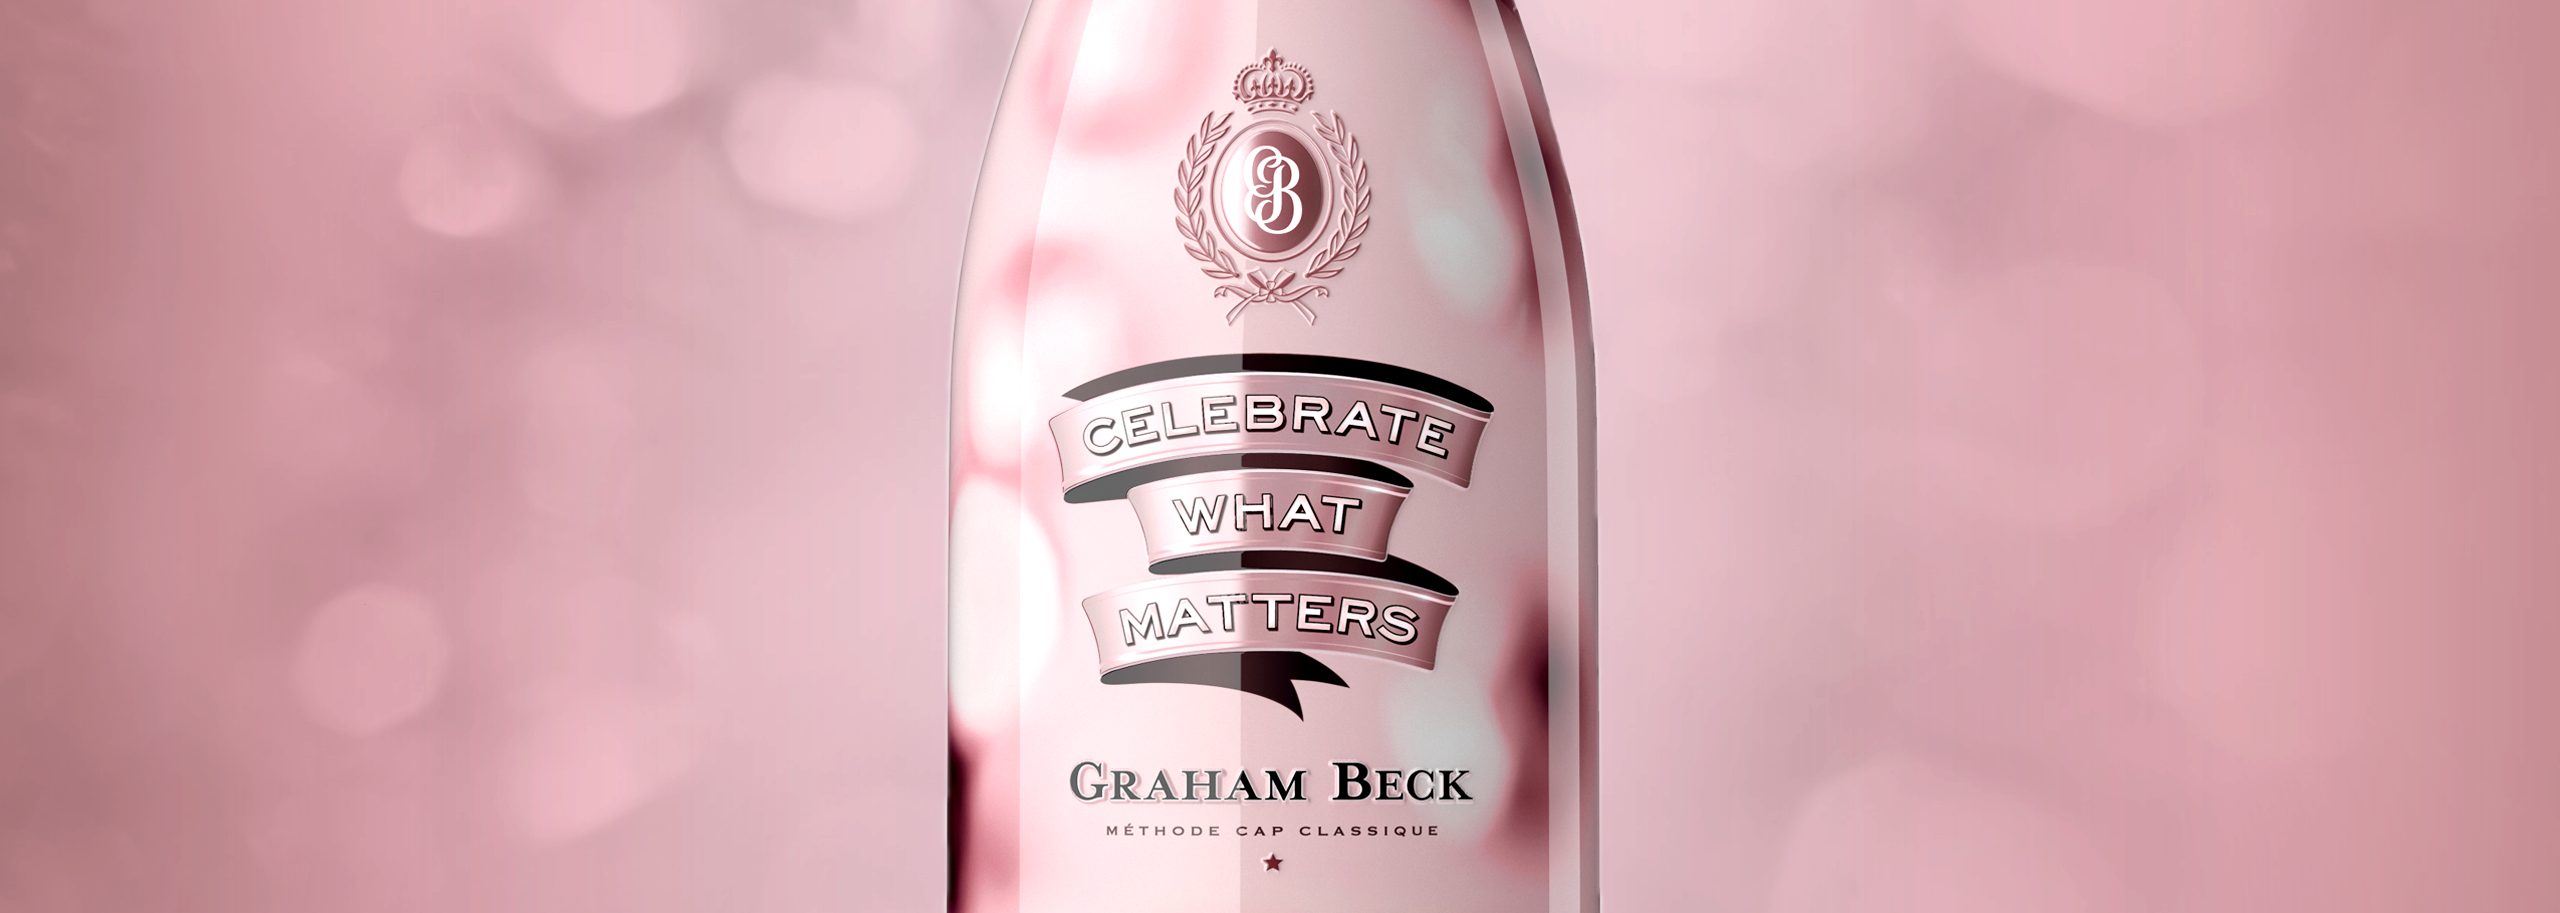 Graham Beck Celebrate What Matters-3